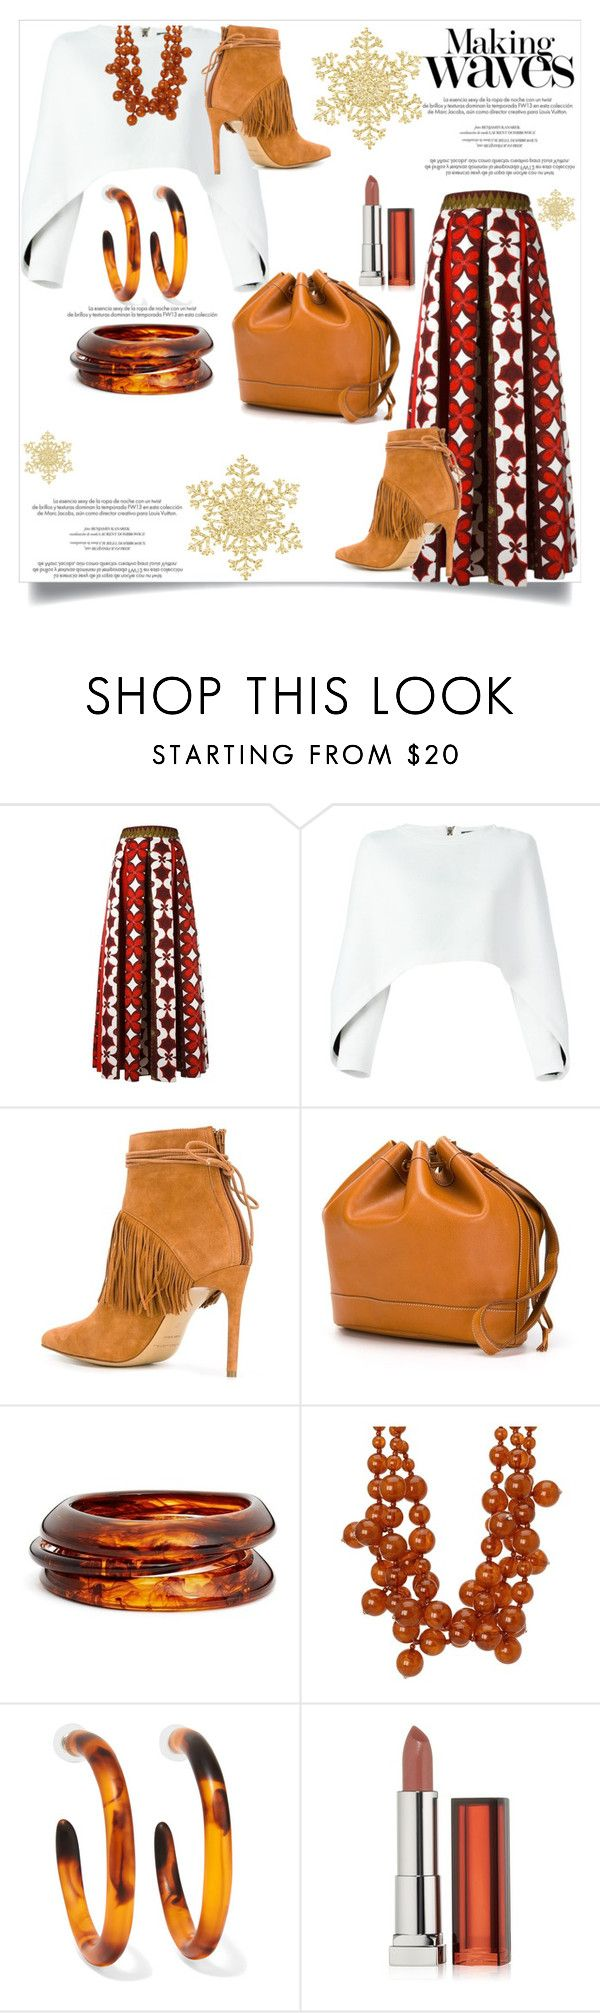 """""""Making Waves"""" by helenaymangual ❤ liked on Polyvore featuring Valentino, Balmain, Bionda Castana, Hermès, ZENZii, Kenneth Jay Lane, Dinosaur Designs, Louis Vuitton and Maybelline"""